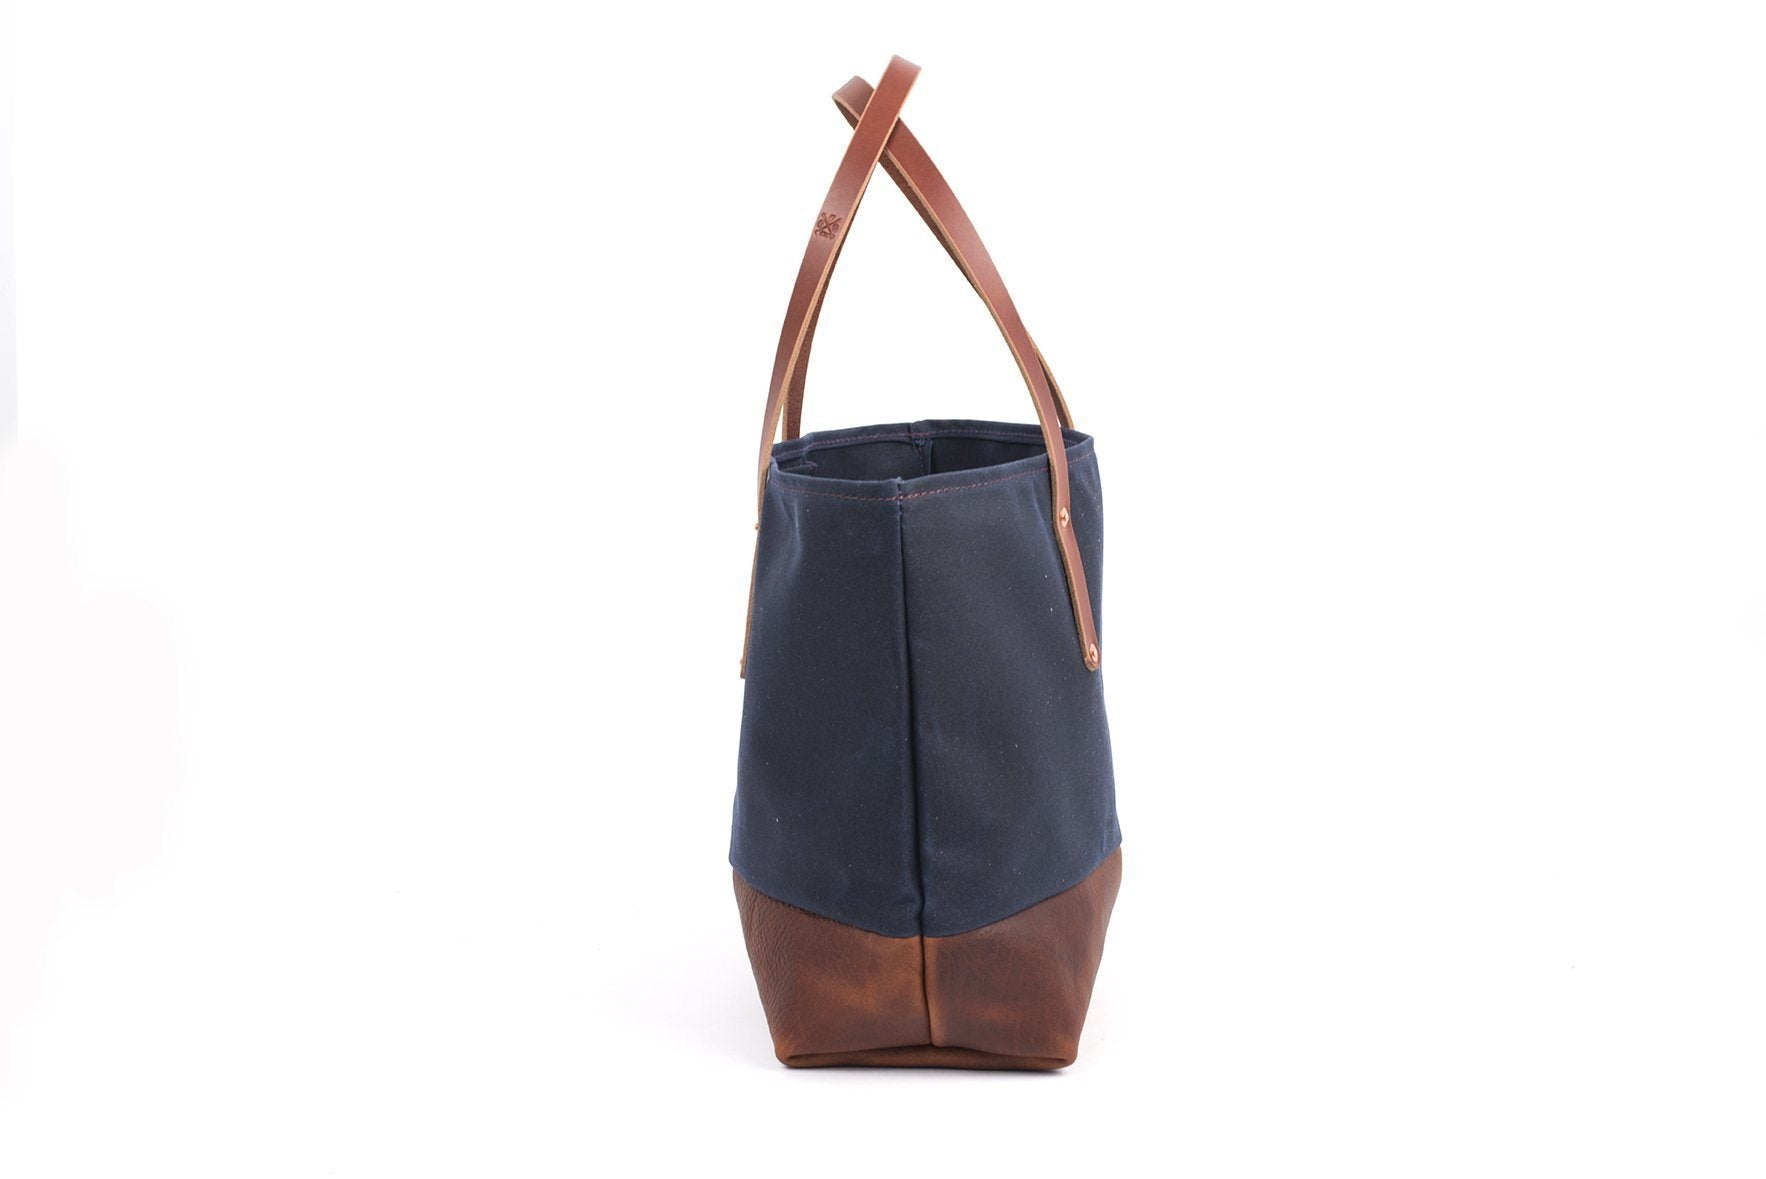 8d5161f377a7 AVERY WAXED CANVAS TOTE BAG - LARGE - Go Forth Goods